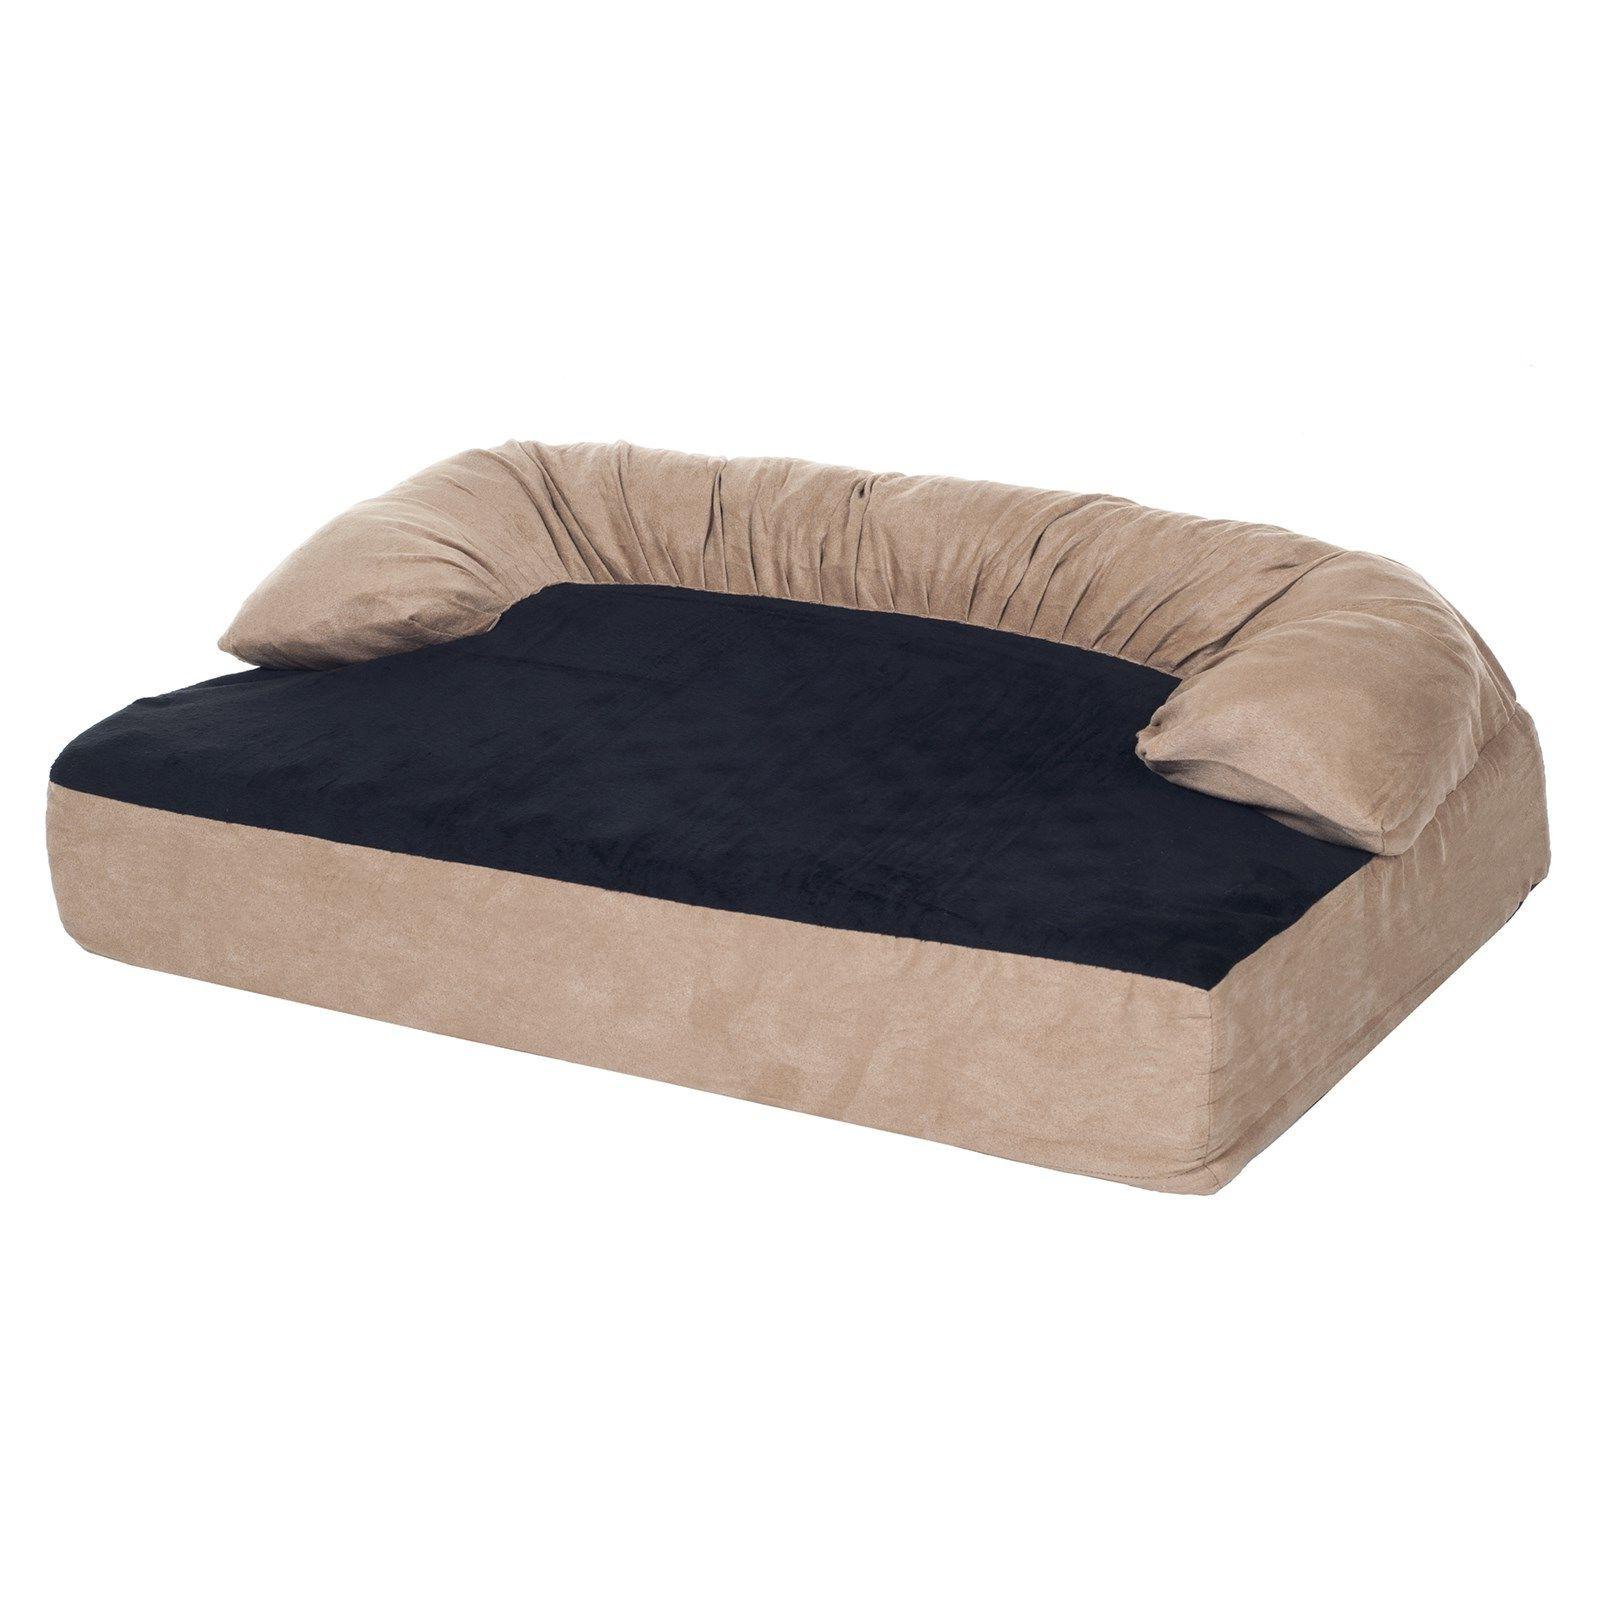 PAW Joint Bed Inches Small